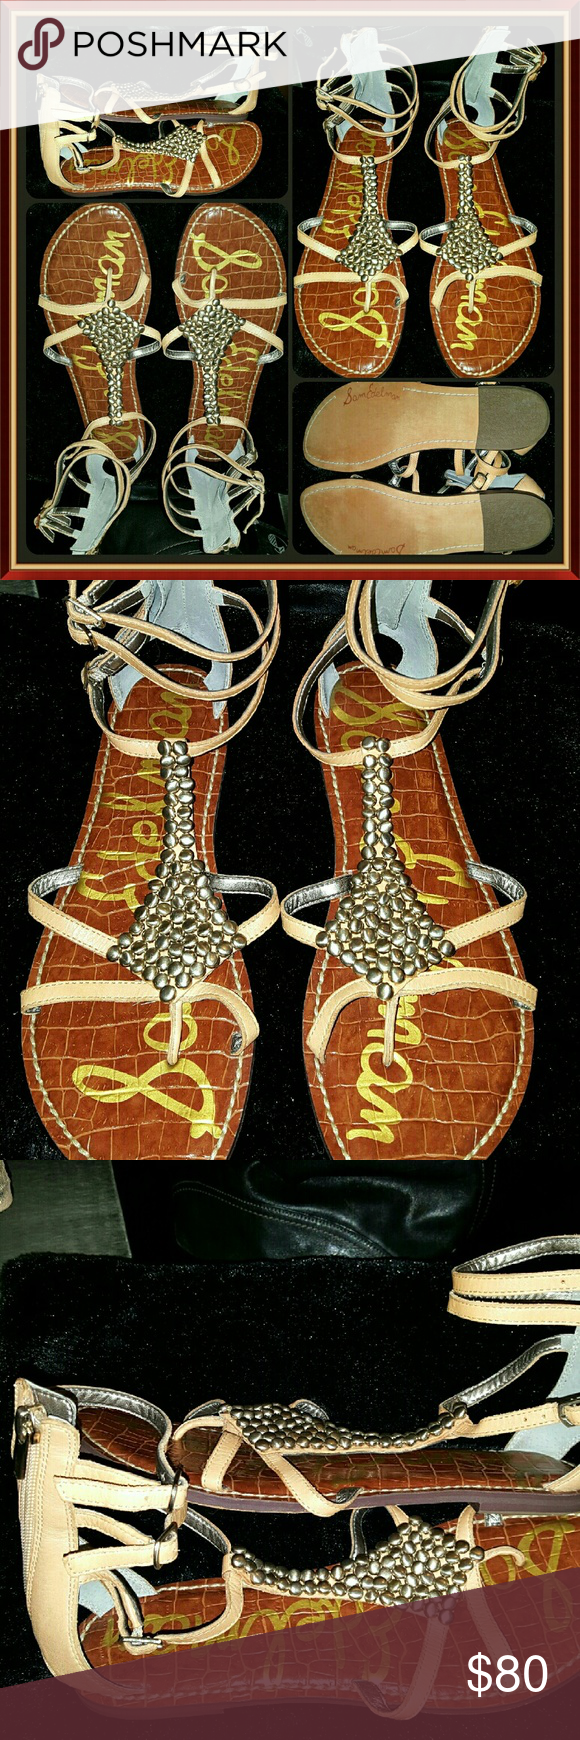 """SAM EDELMAN GLADIATOR metal bead BOHO GLAM SANDALS just 1 of 3 pairs of designer SAM EDELMAN equisite sandals I'll be posting 2day out of my OWN PERSONAL COLLECTION!...these are the """"GINGER"""" gladiator style sandals with the MOST AMAZING silver metal beaded accents...they are a LADIES SIZE-8 and in ABSOLUTE EXCELLENT almost like new condition as I ONLY WORE THEM ONCE! Sam Edelman Shoes Sandals"""